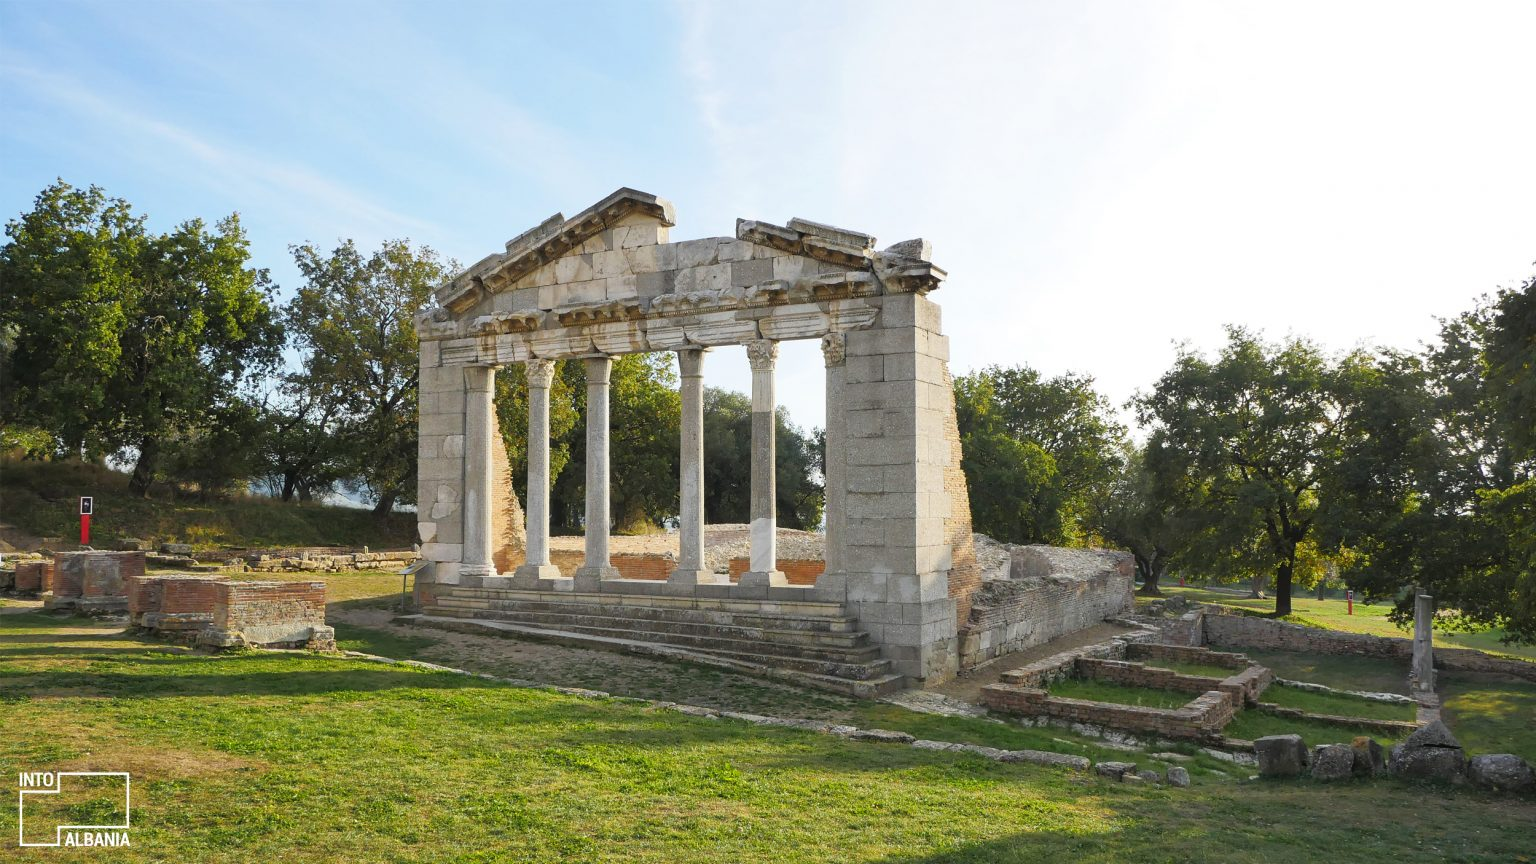 The Buleuterion, Archeological Park of Apollonia, Fier, photo by IntoAlbania